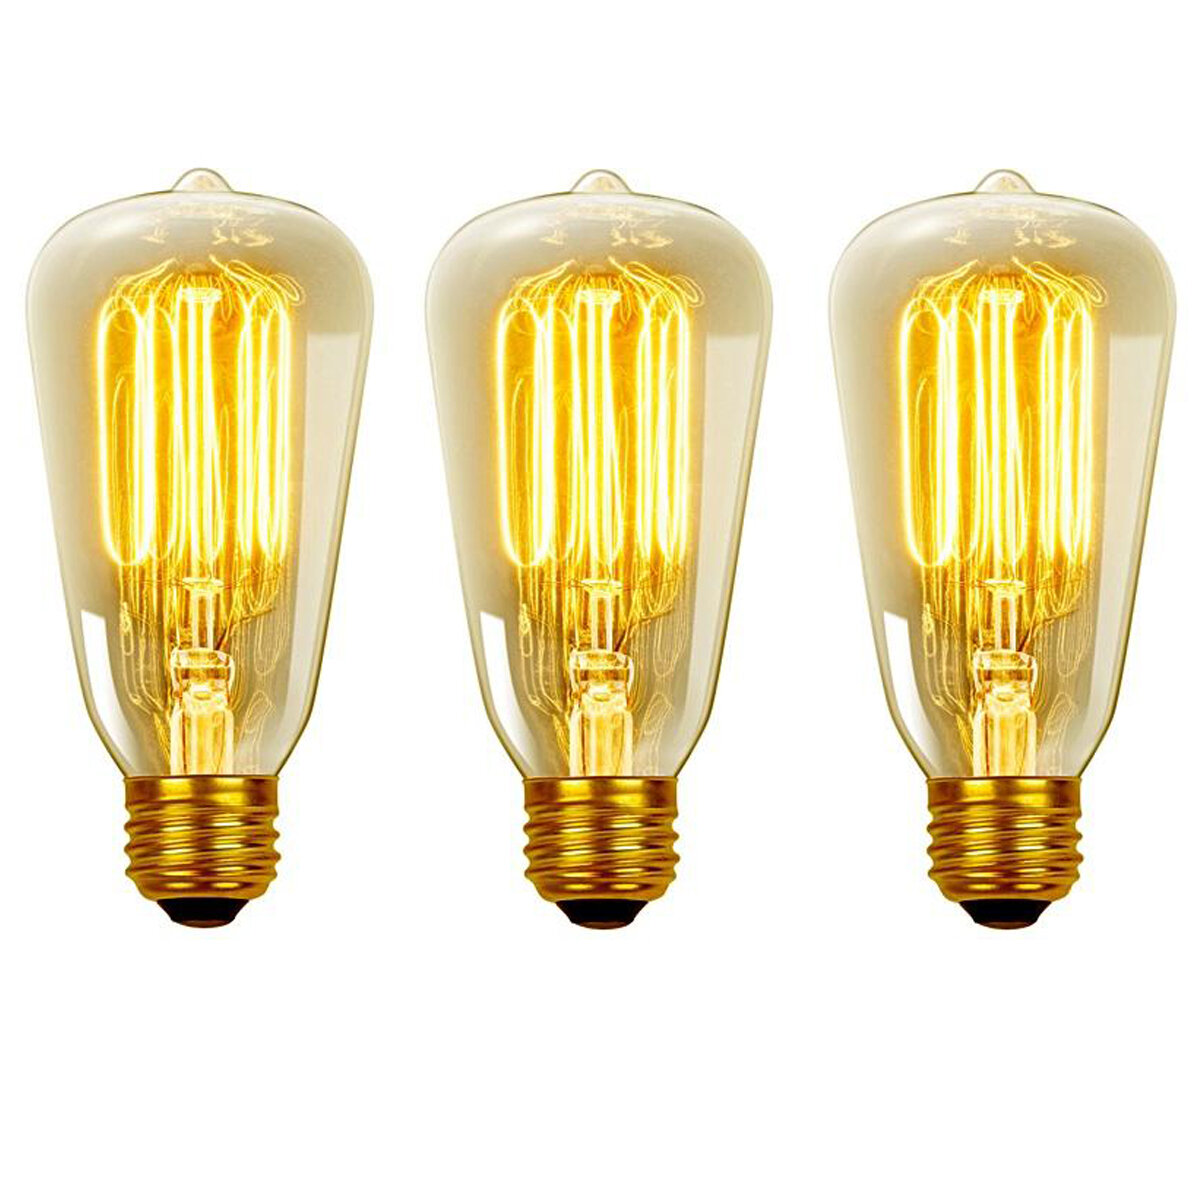 2a94256a32c Globe Electric Company Vintage Edison 40 Watt (2700K) S60 Squirrel Cage  Incandescent Filament Light Bulb   Reviews